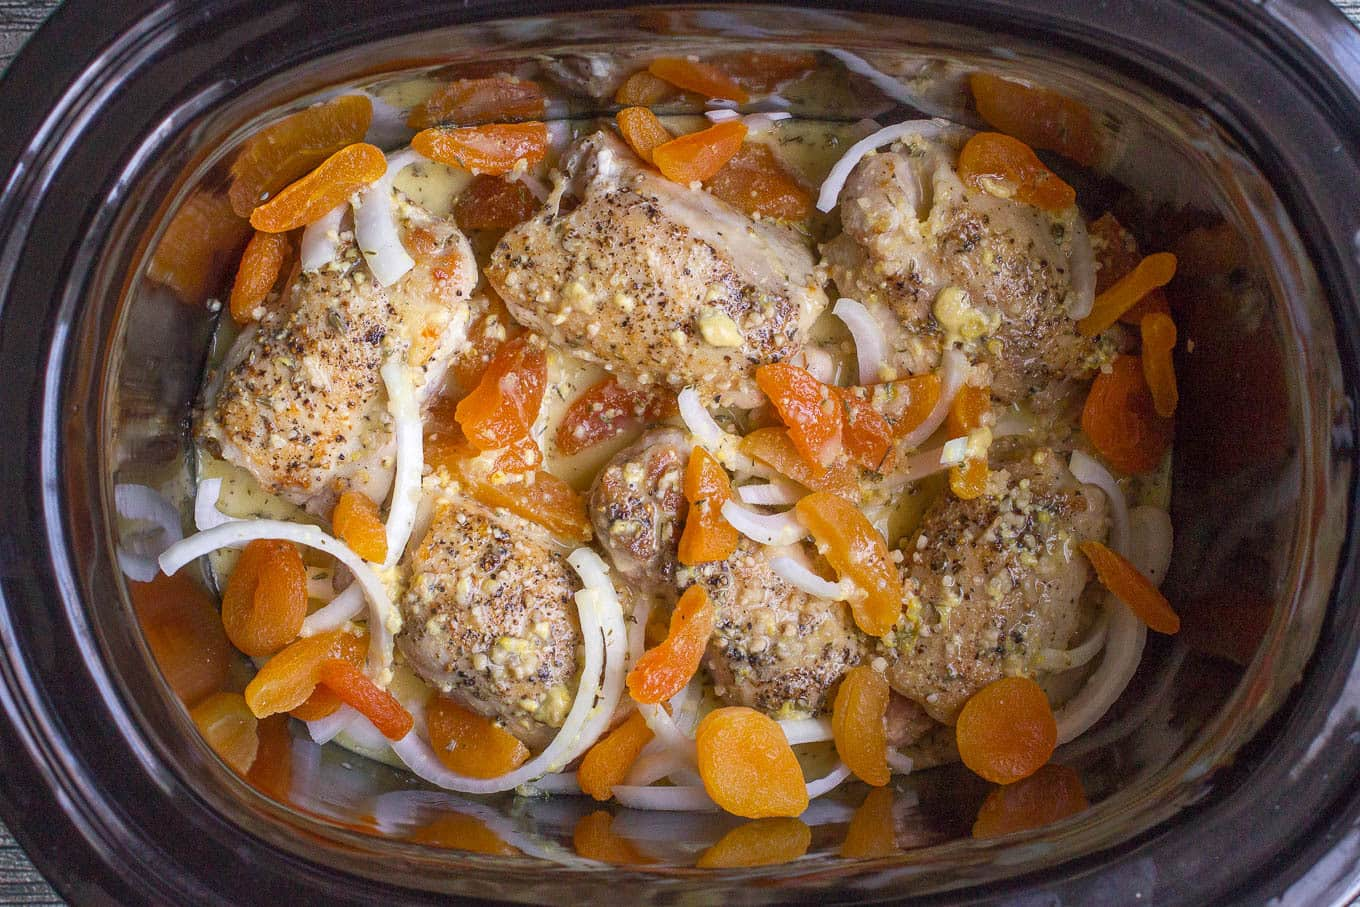 Slow cooker apricot chicken - a simple dinner recipe with big fresh flavors and an intoxicating aroma!